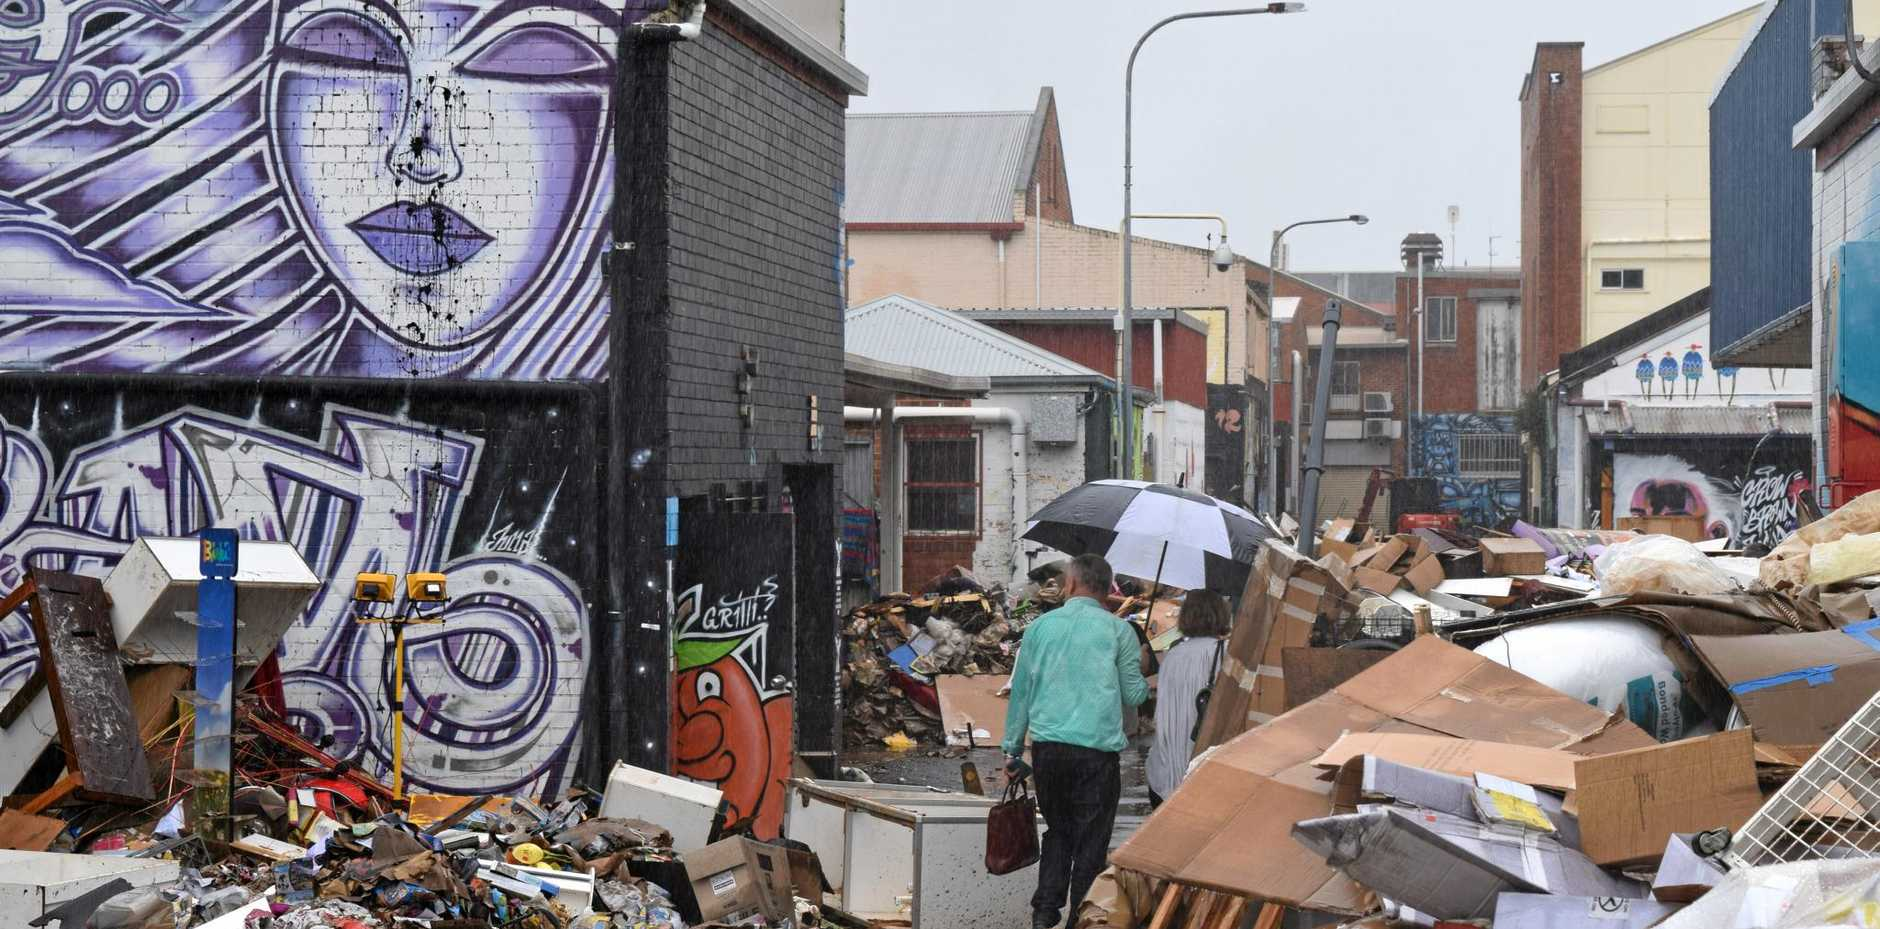 Piles of ruined goods and rubbish fill back streets of Lismore's CBD.